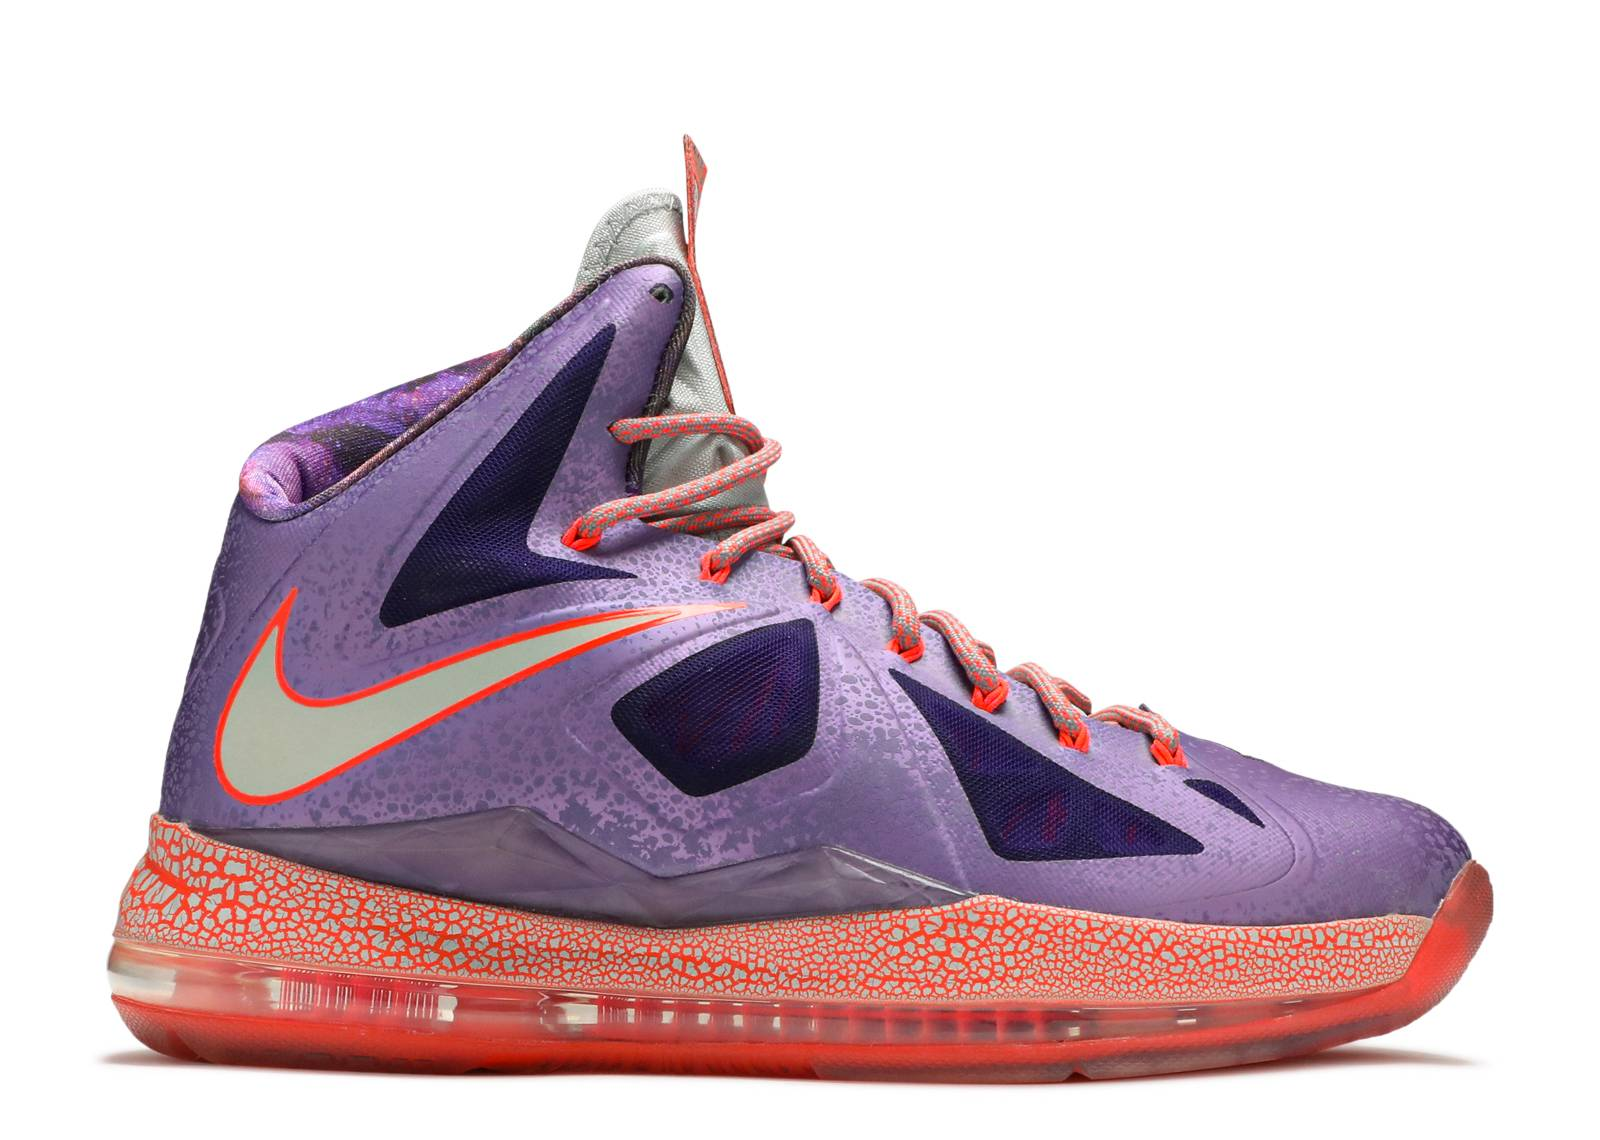 172b08e51d3c9 Lebron 10 As